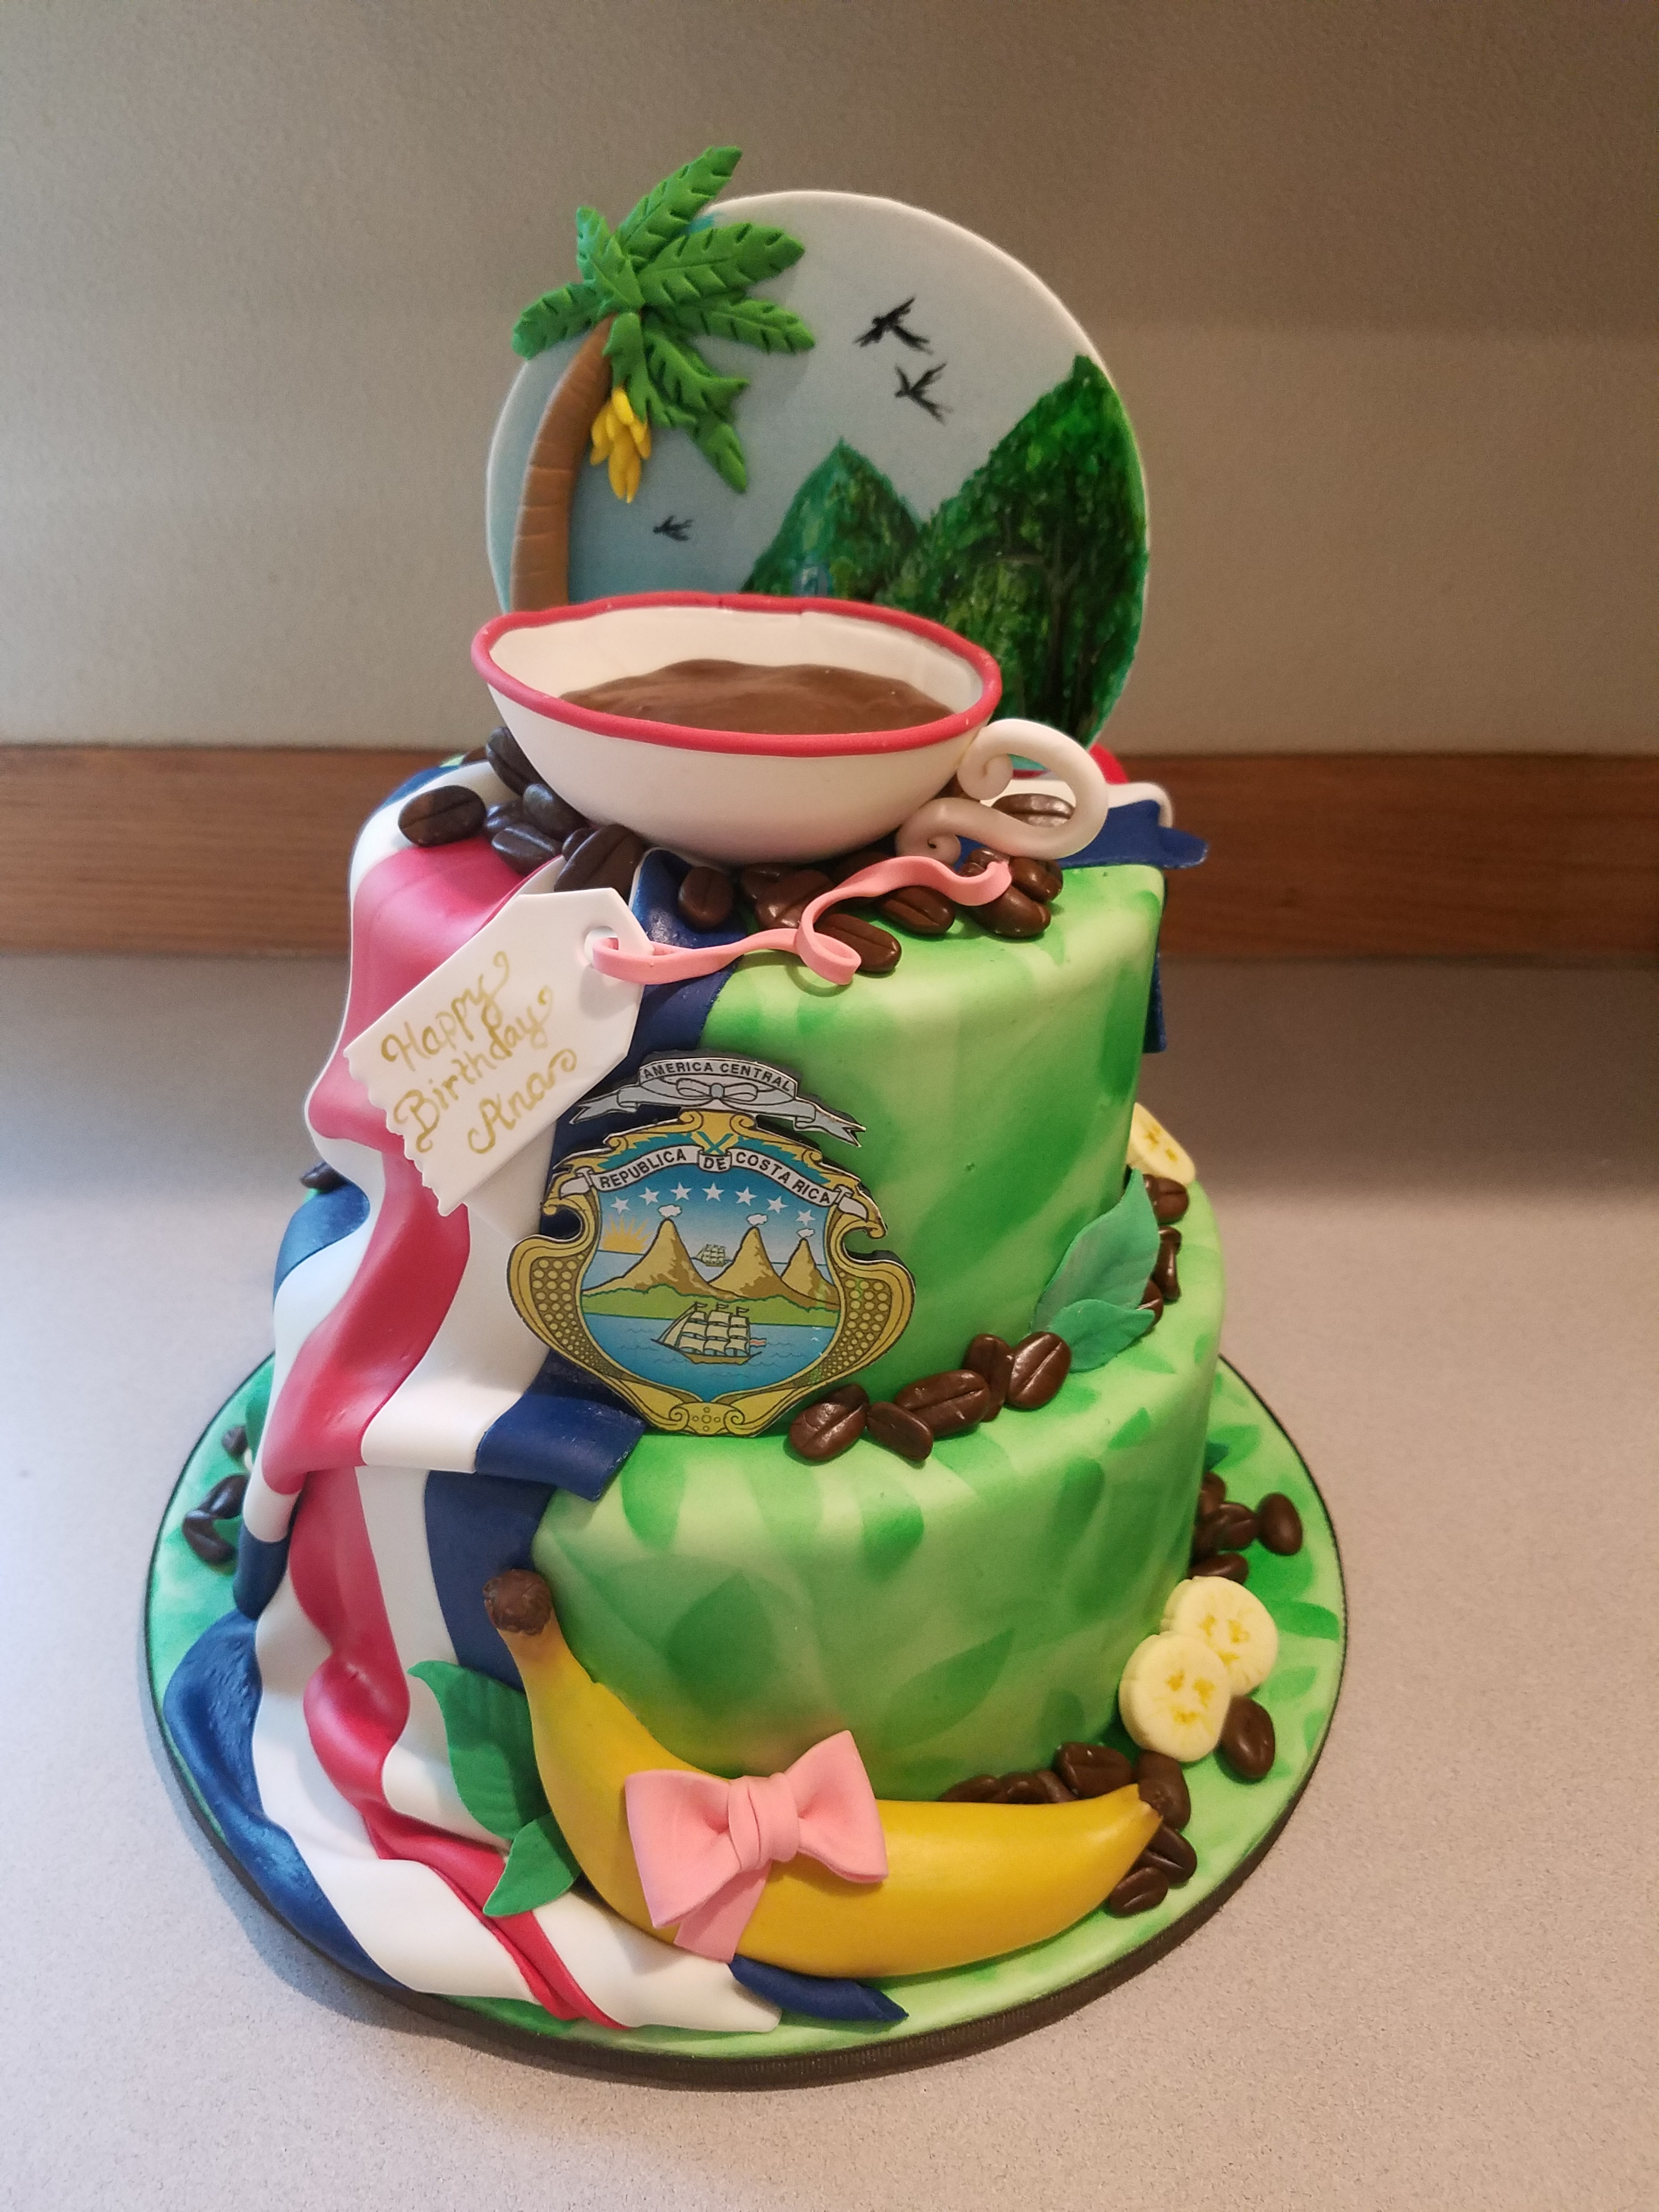 A Costa Rica themed cake